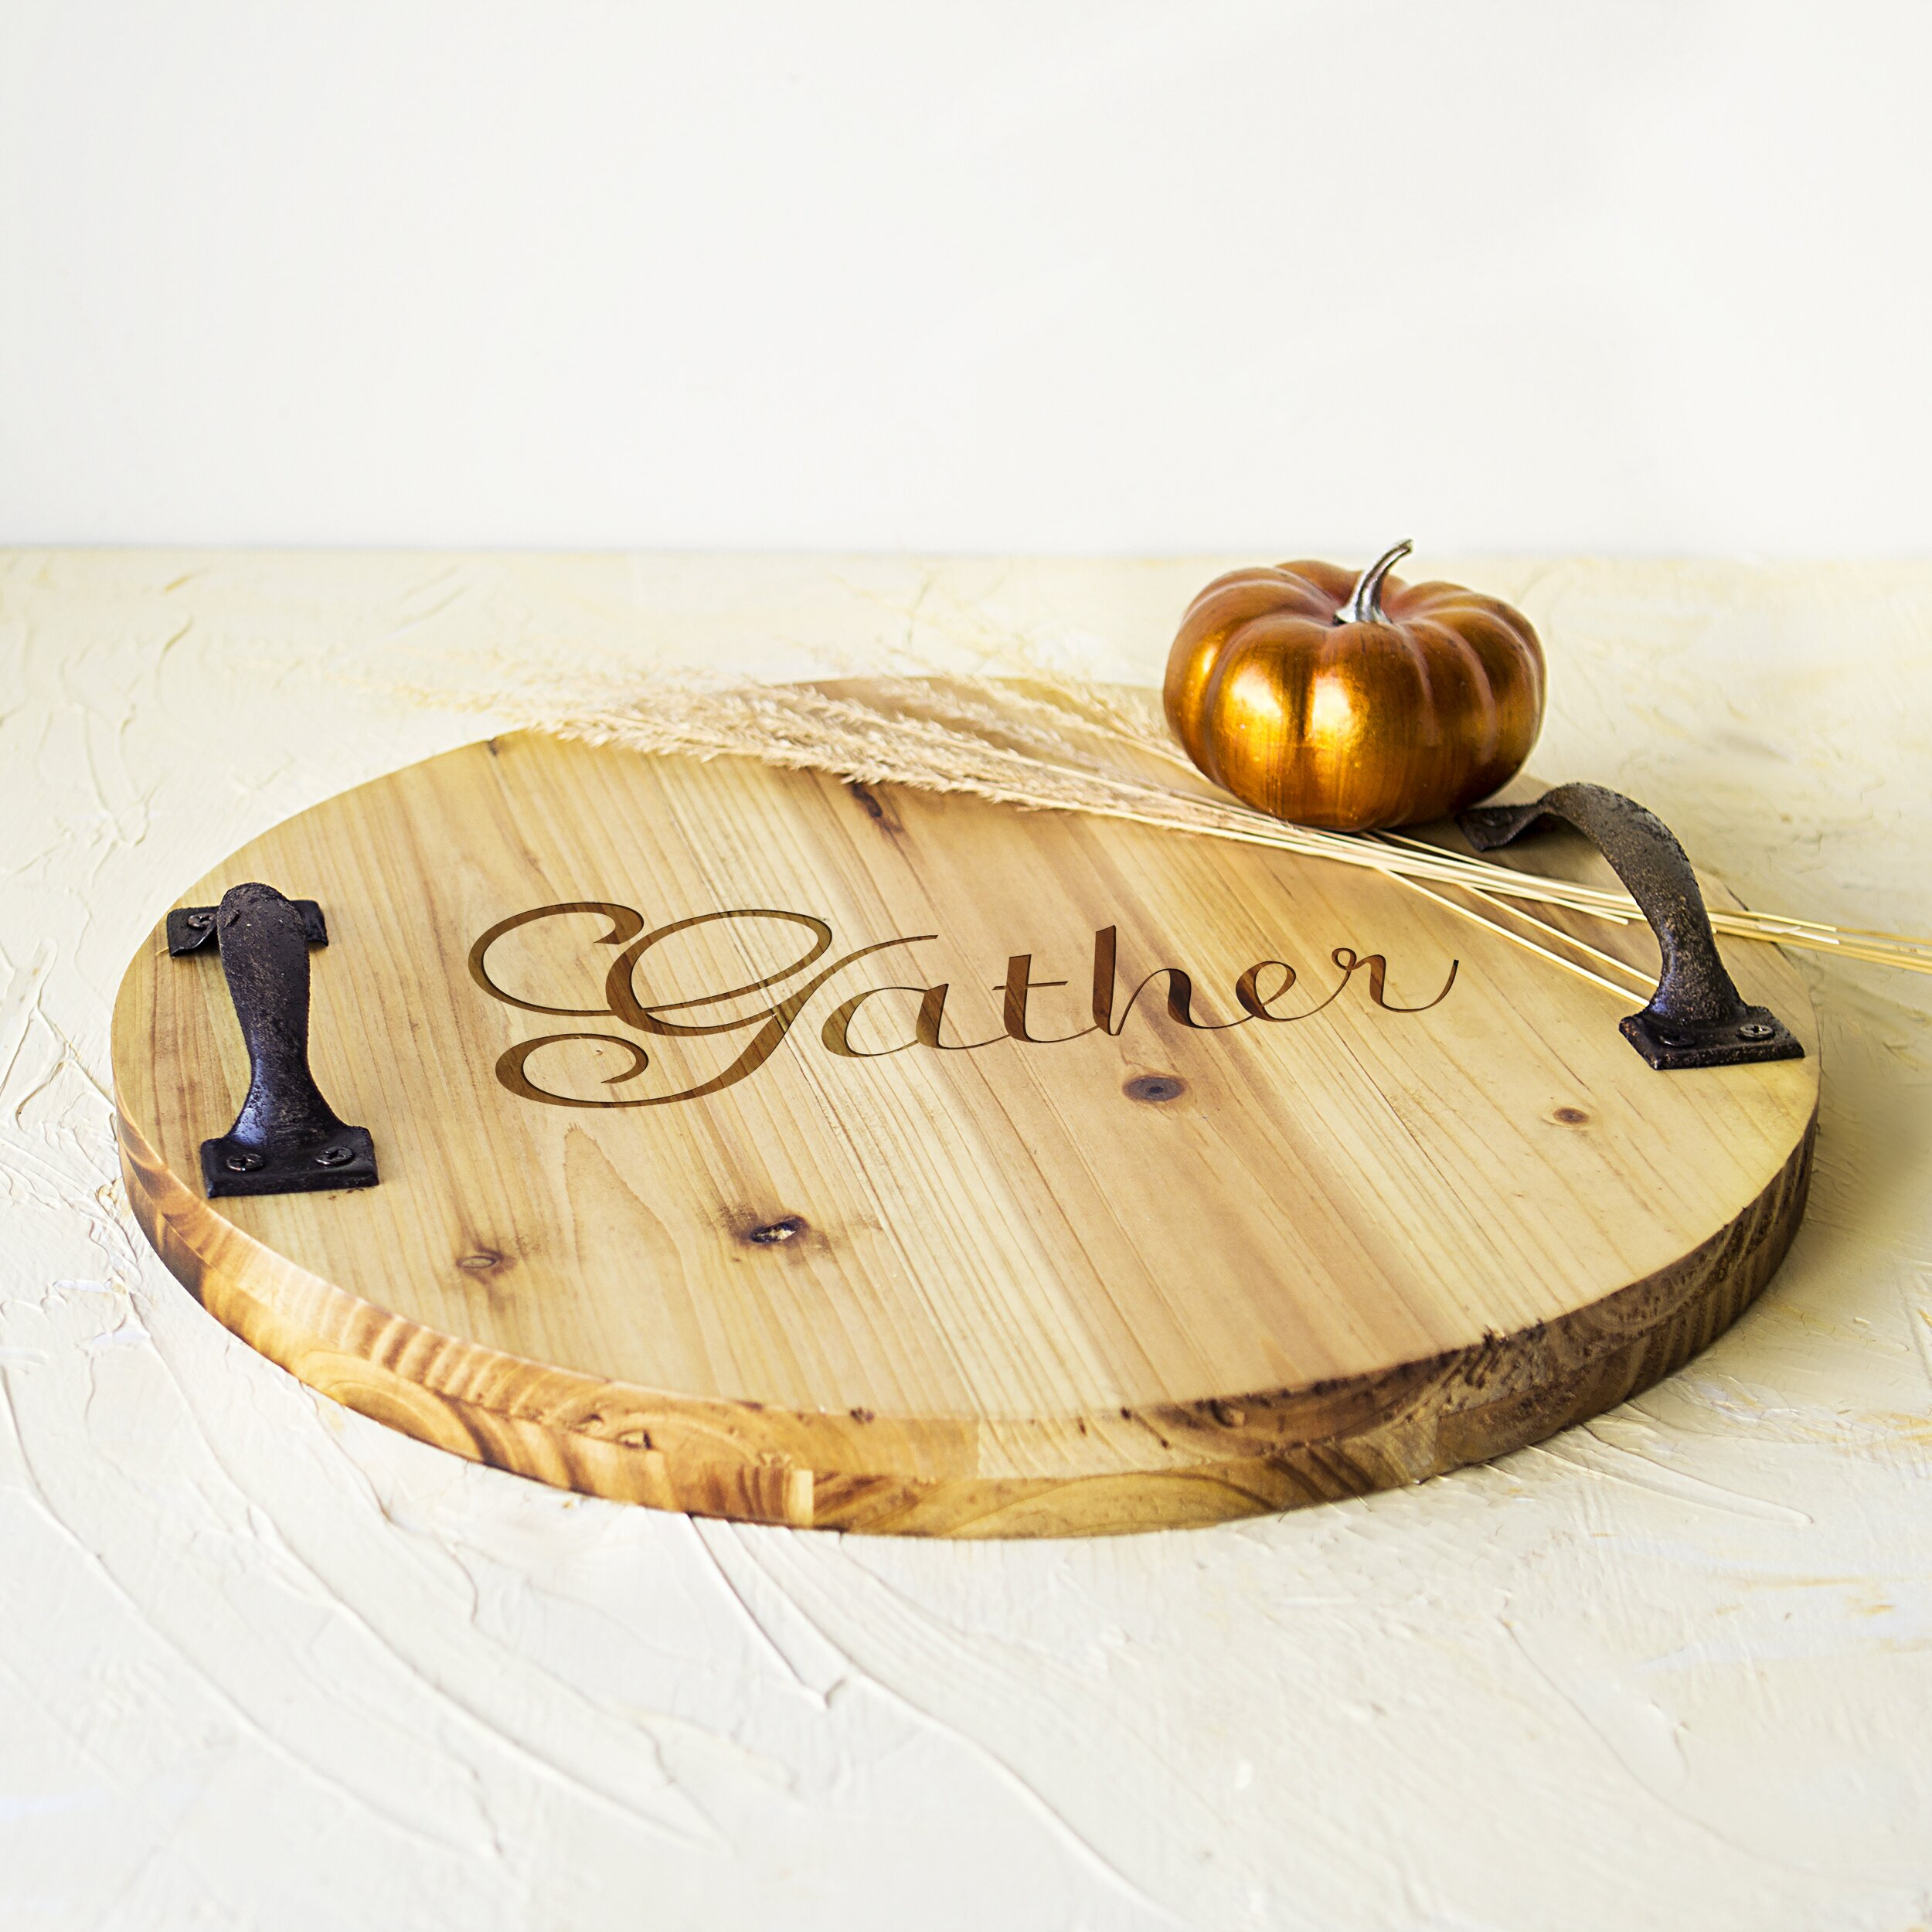 Cathys concepts harvest rustic gather wood tray for Rustic concept